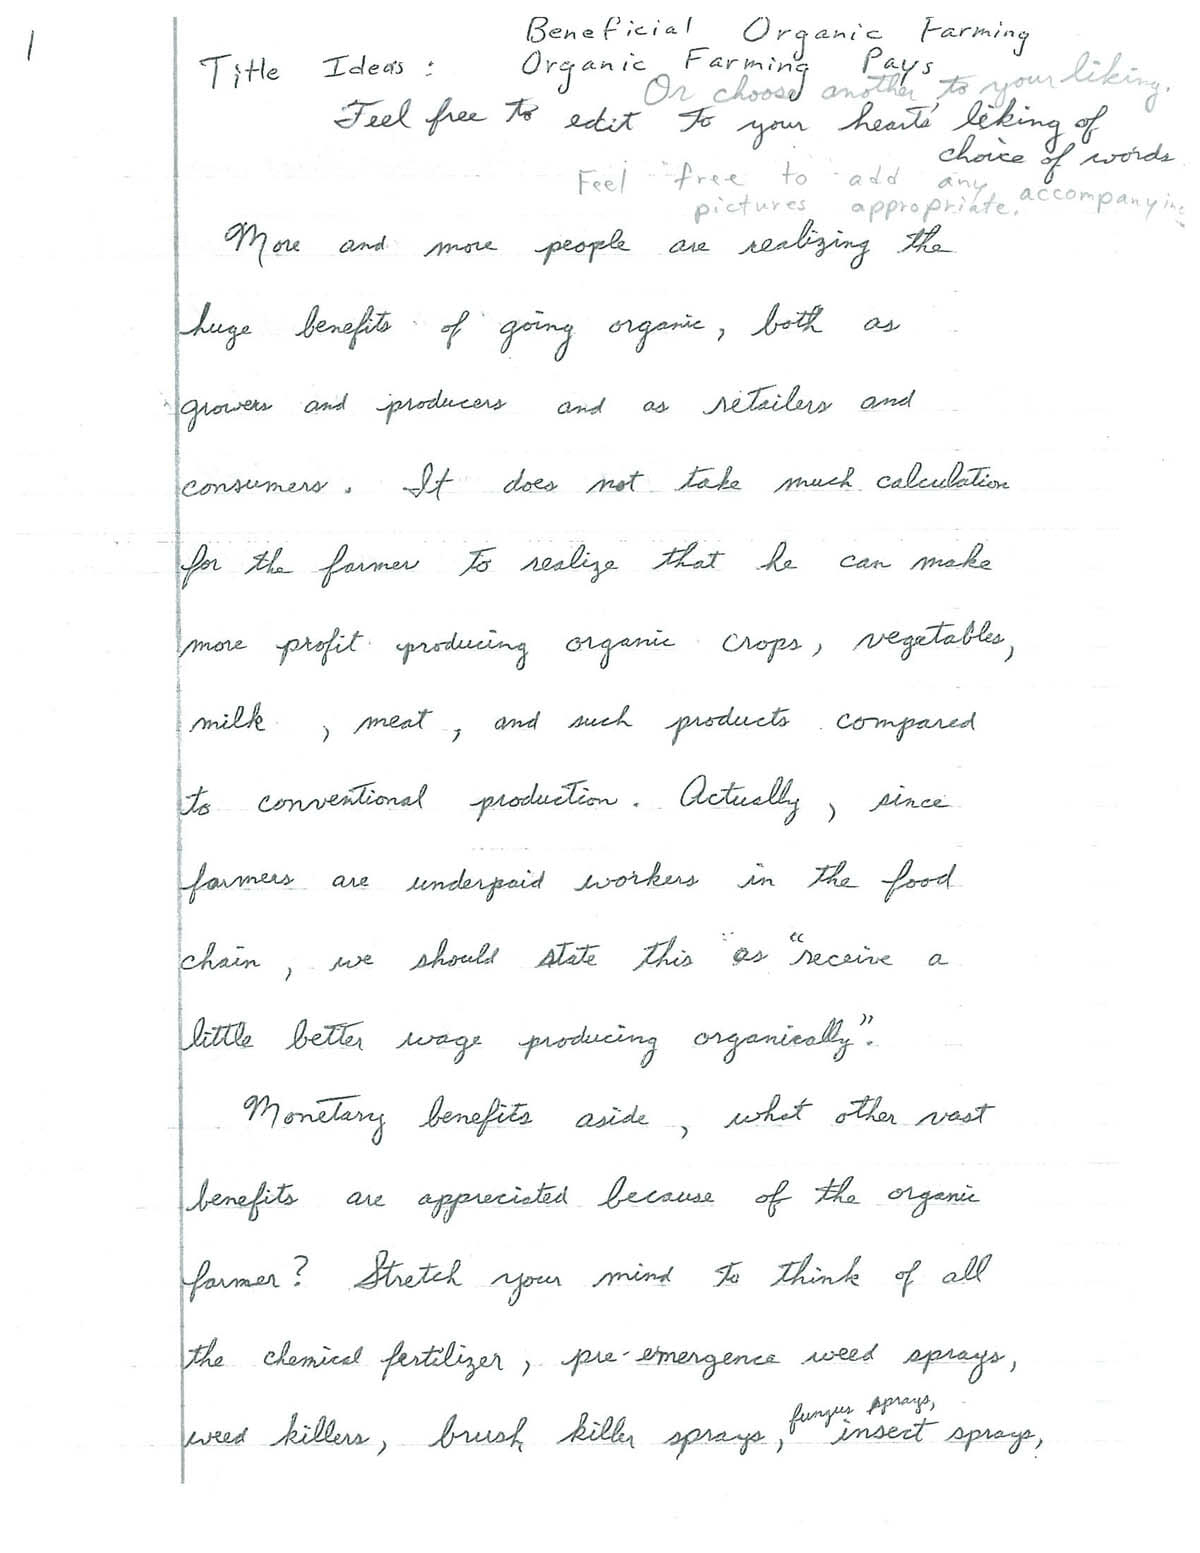 A Page Handwritten Illustrated Essay From An Amish Organic  More And More People Are Realizing The Huge Benefits Of Going Organic Both  As Growers And Producers And As Retailers And Consumers Cause And Effect Essay Topics For High School also Custom Essay Papers  Secondary School English Essay